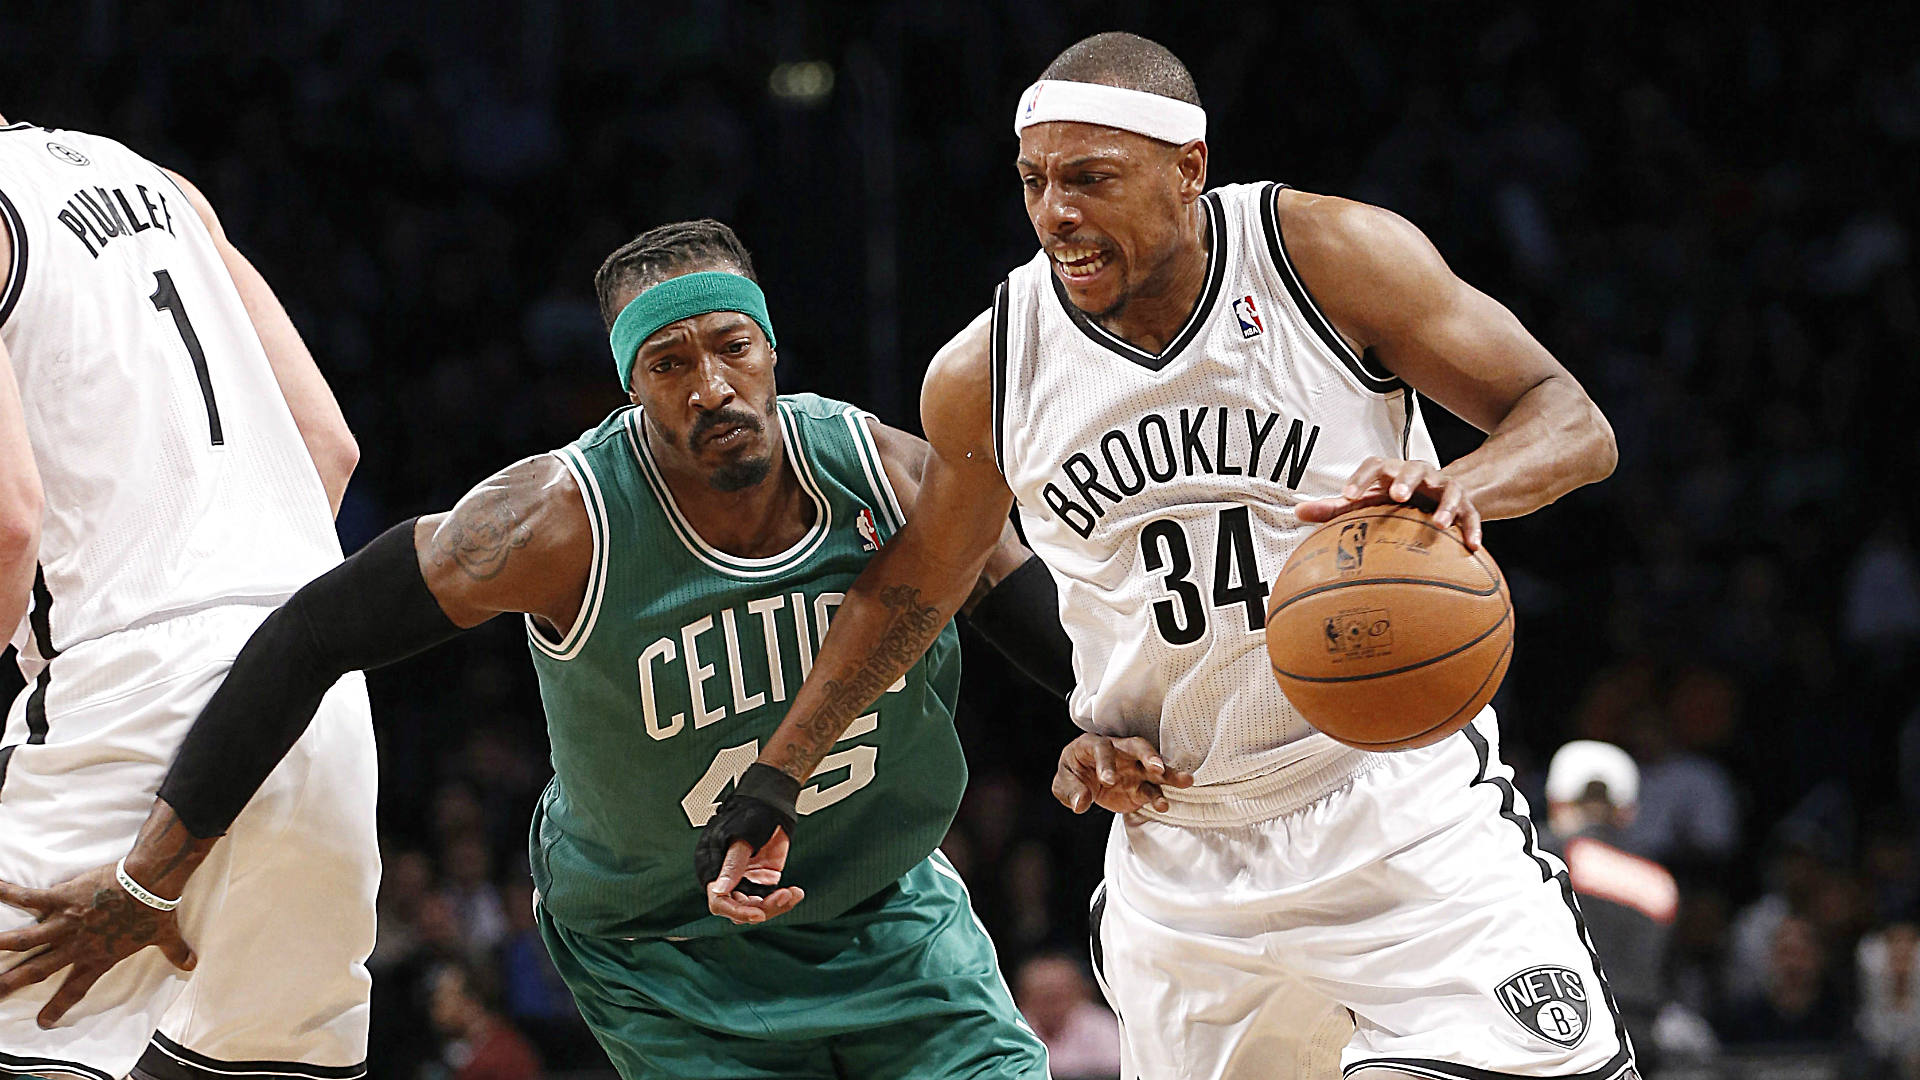 Paul-Pierce-121013-AP-FTR.jpg